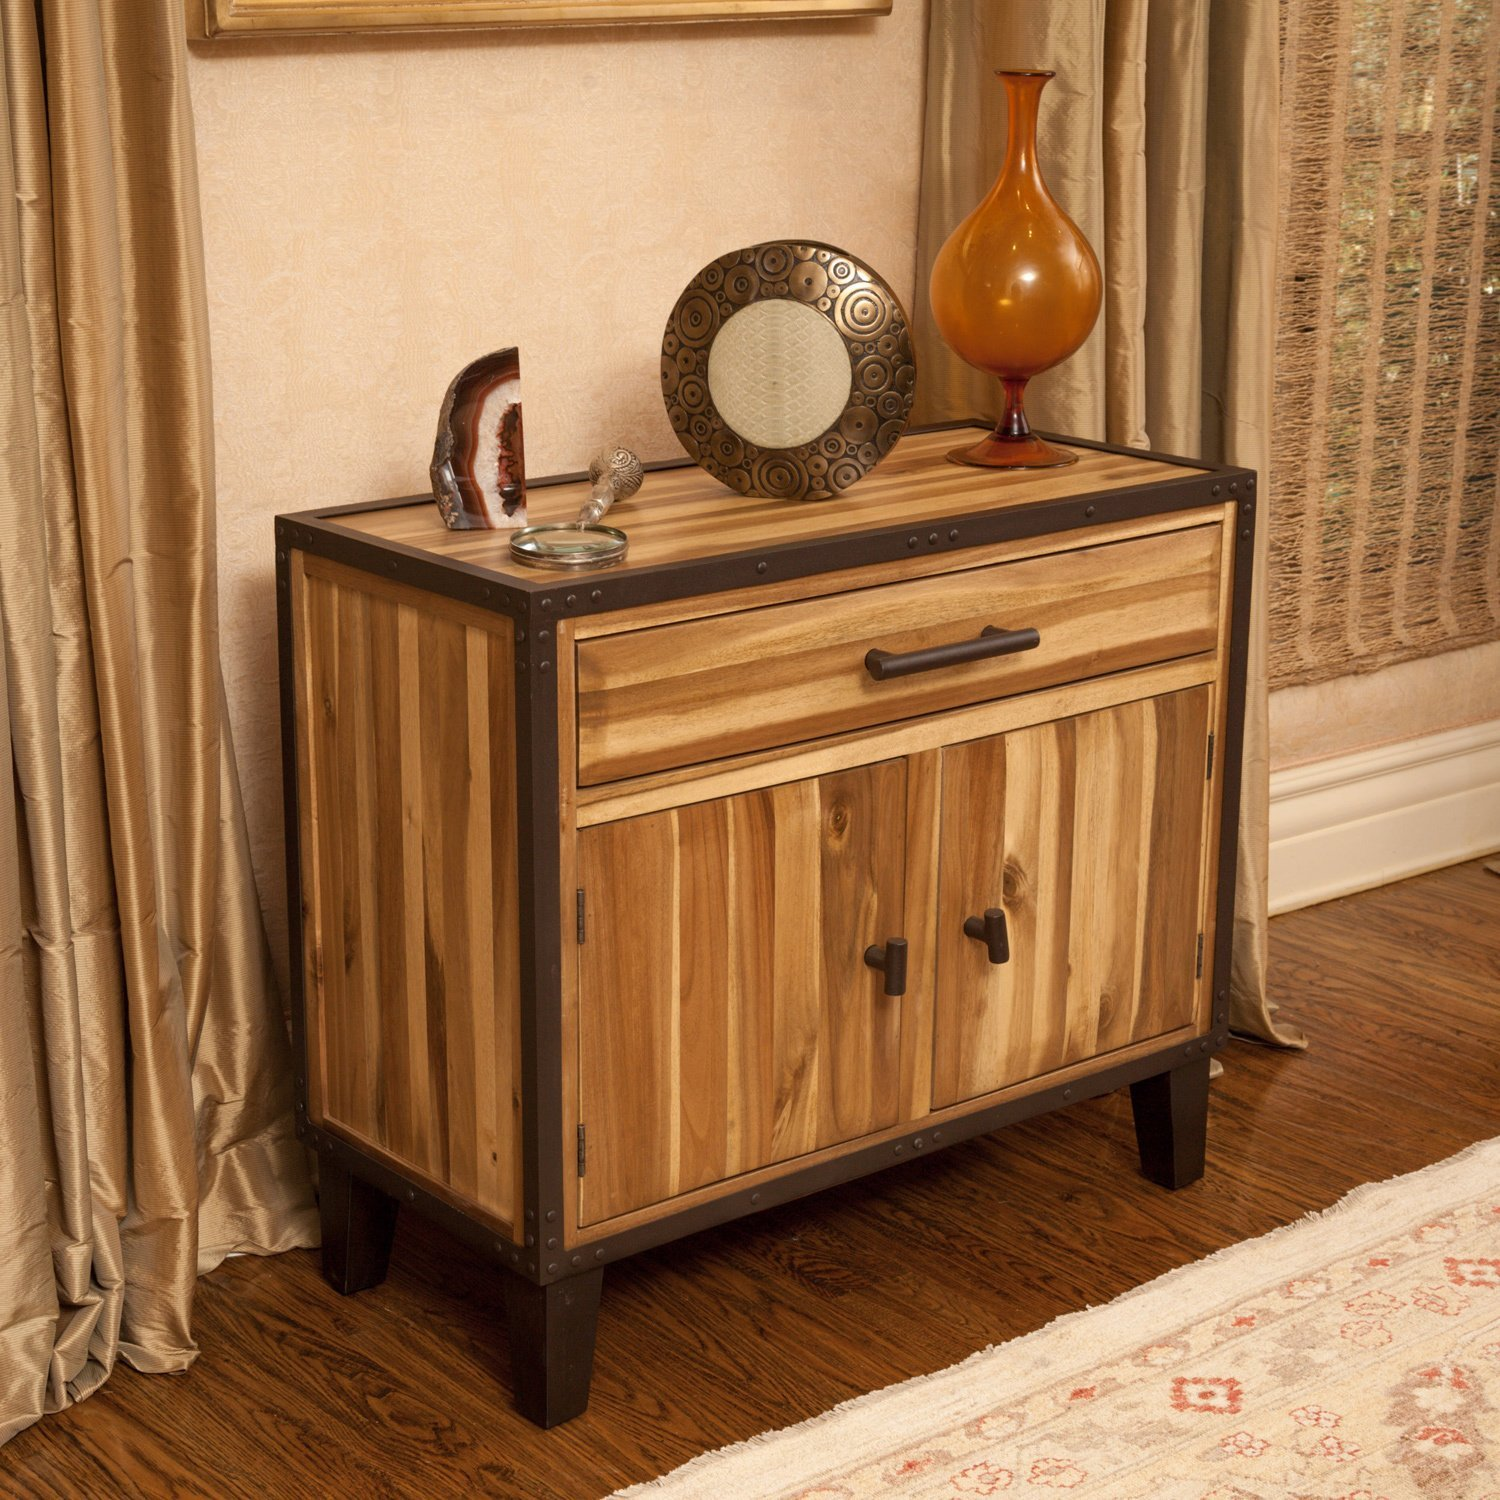 modern acacia wood accent cabinet console table with drawers nailheads cabinets and metal coffee legs inch wall clock target makeup vanity bedroom decoration buffet side west elm